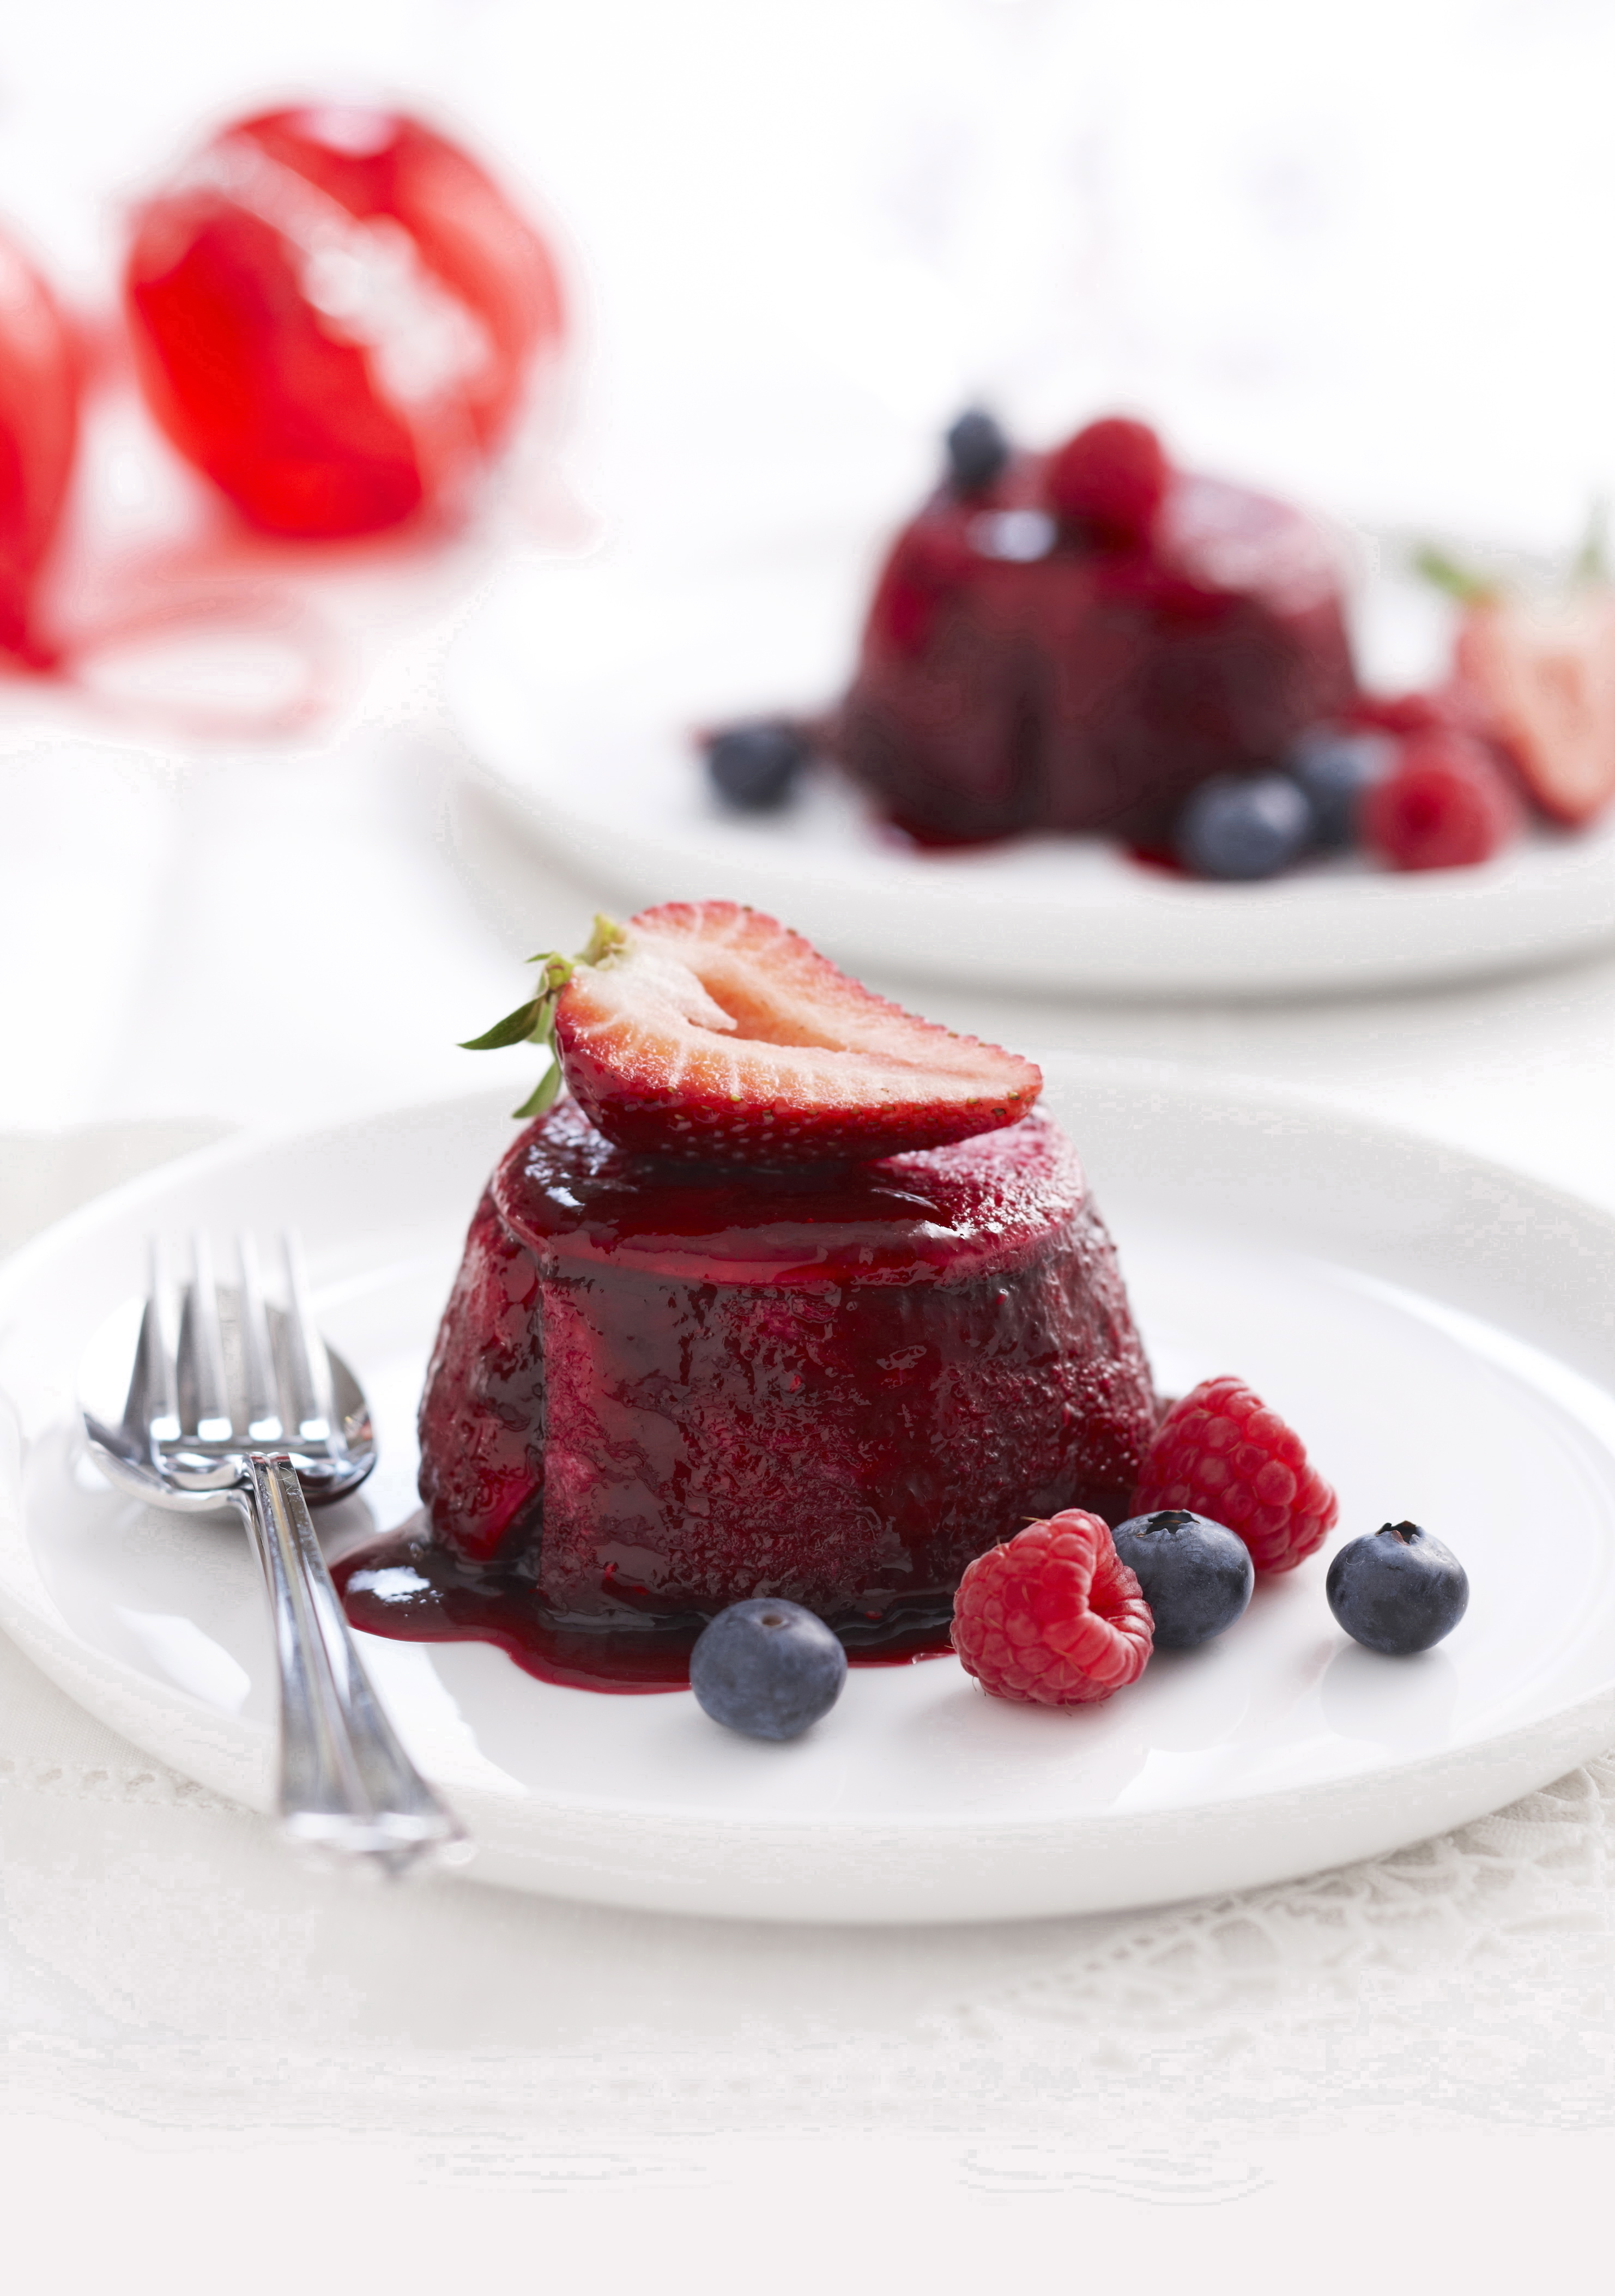 Communication on this topic: Individual Summer Puddings, individual-summer-puddings/